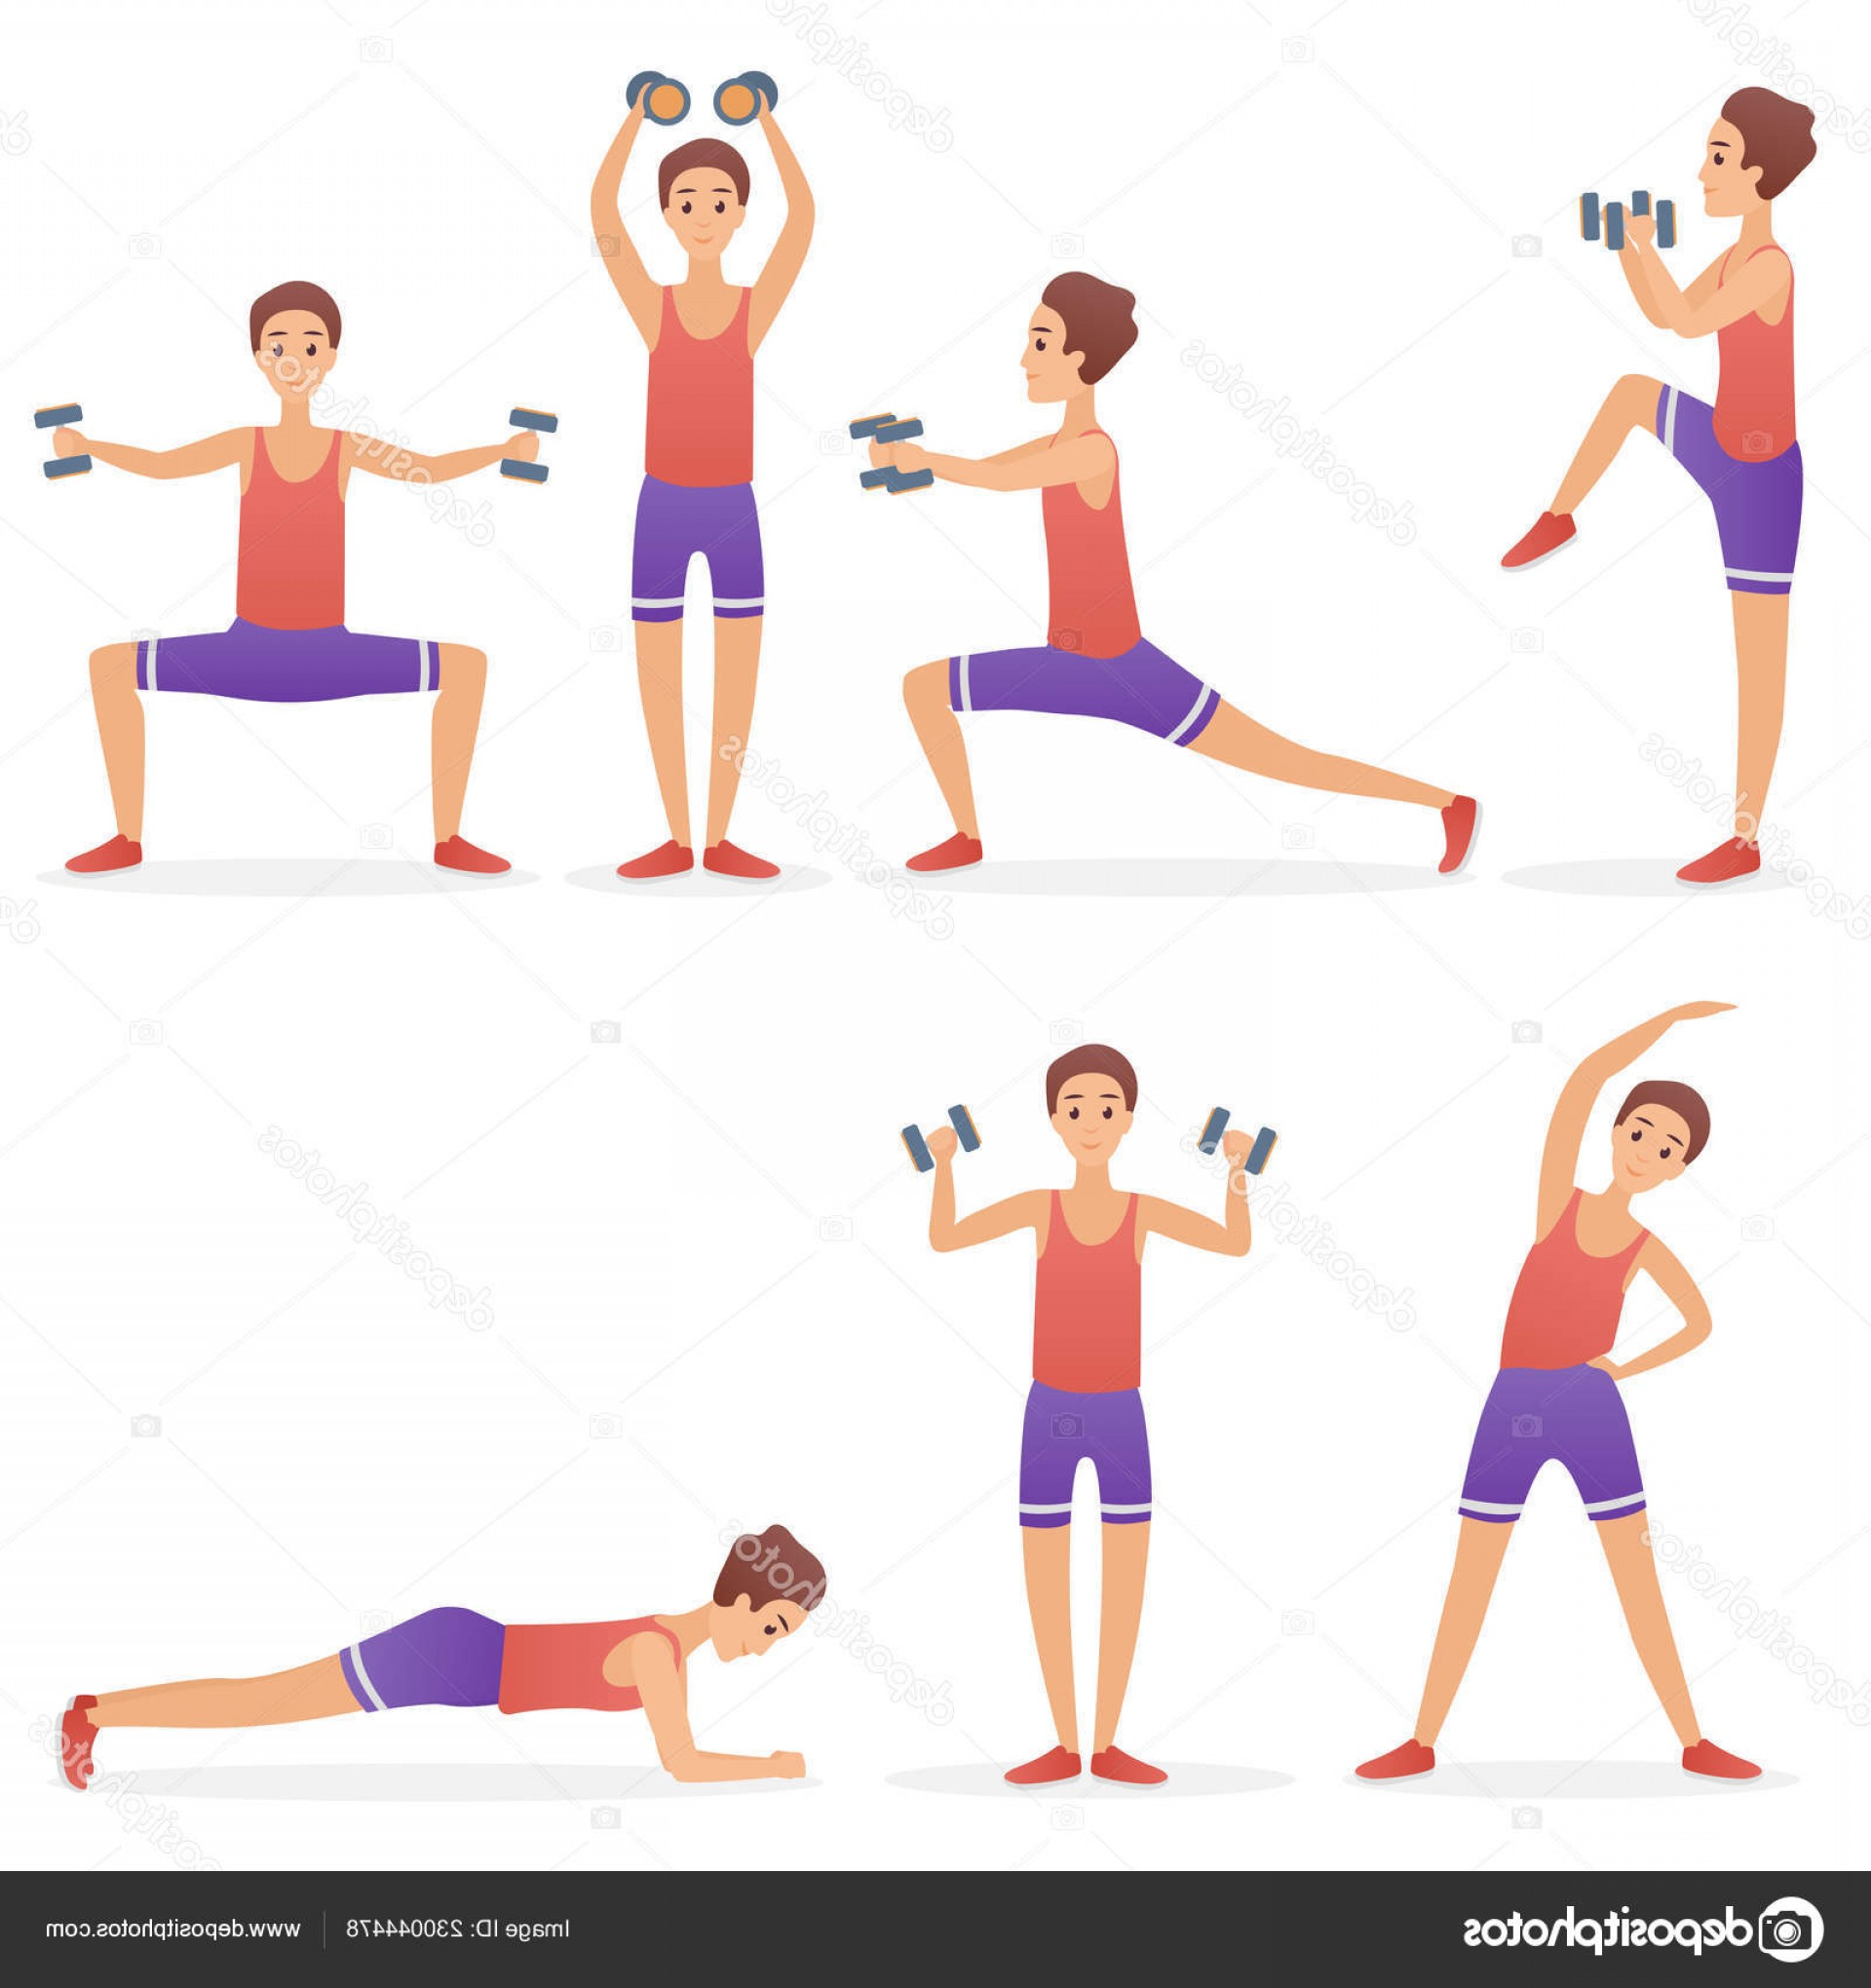 Man Vector Exercise: Stock Illustration Funny Handsome Man Exercising Various